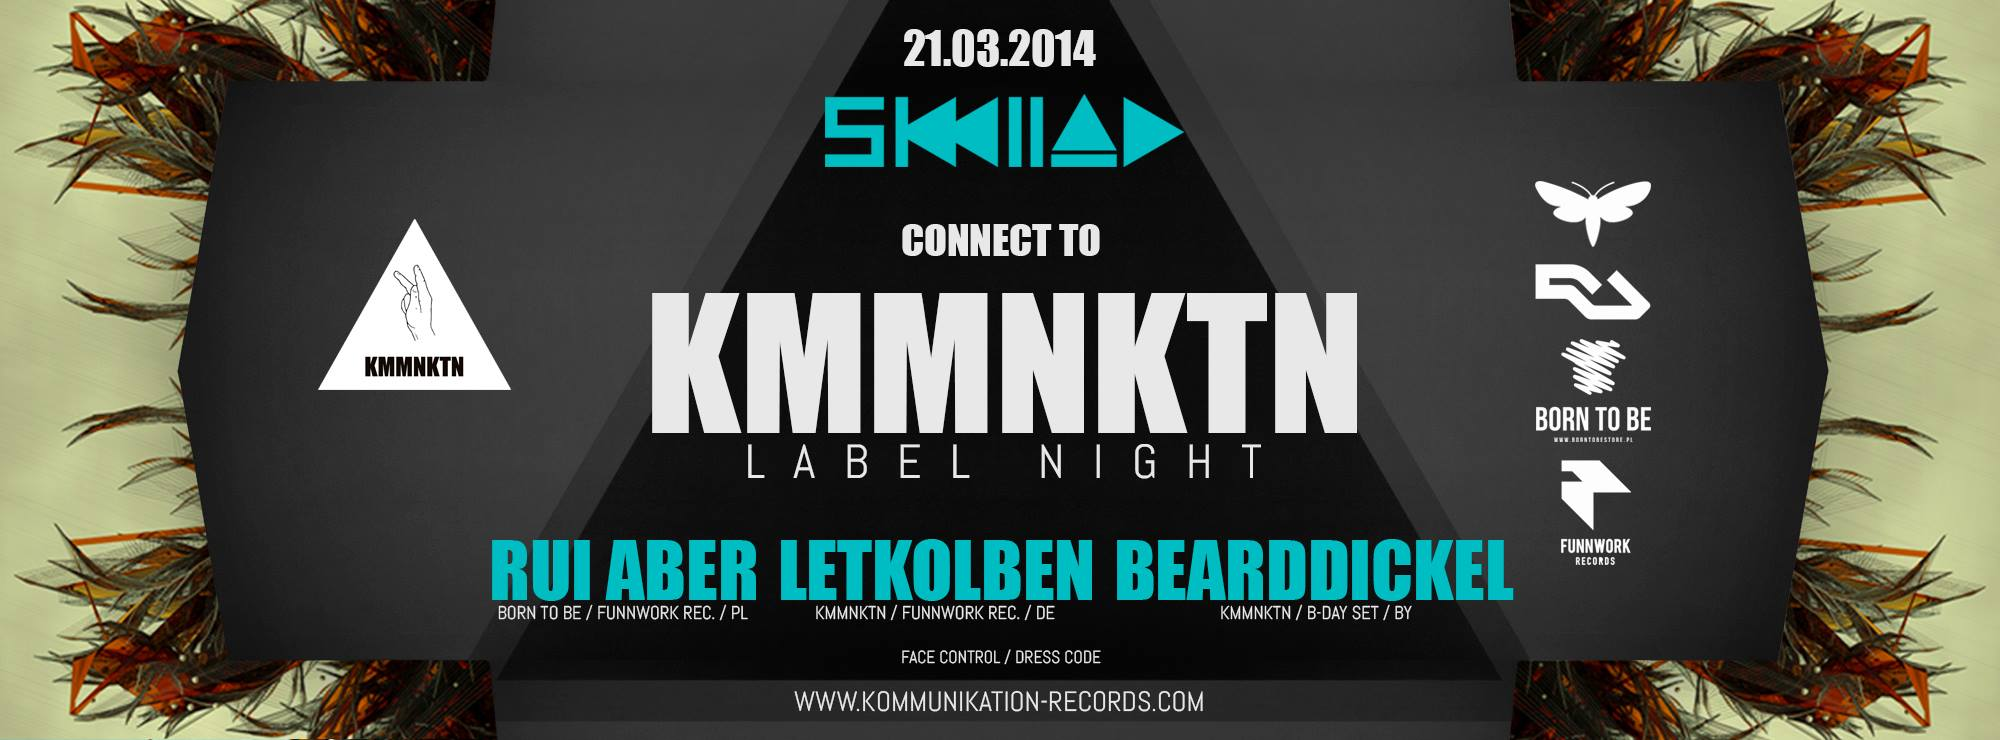 Connect to KMMNKTN Label Night концерт